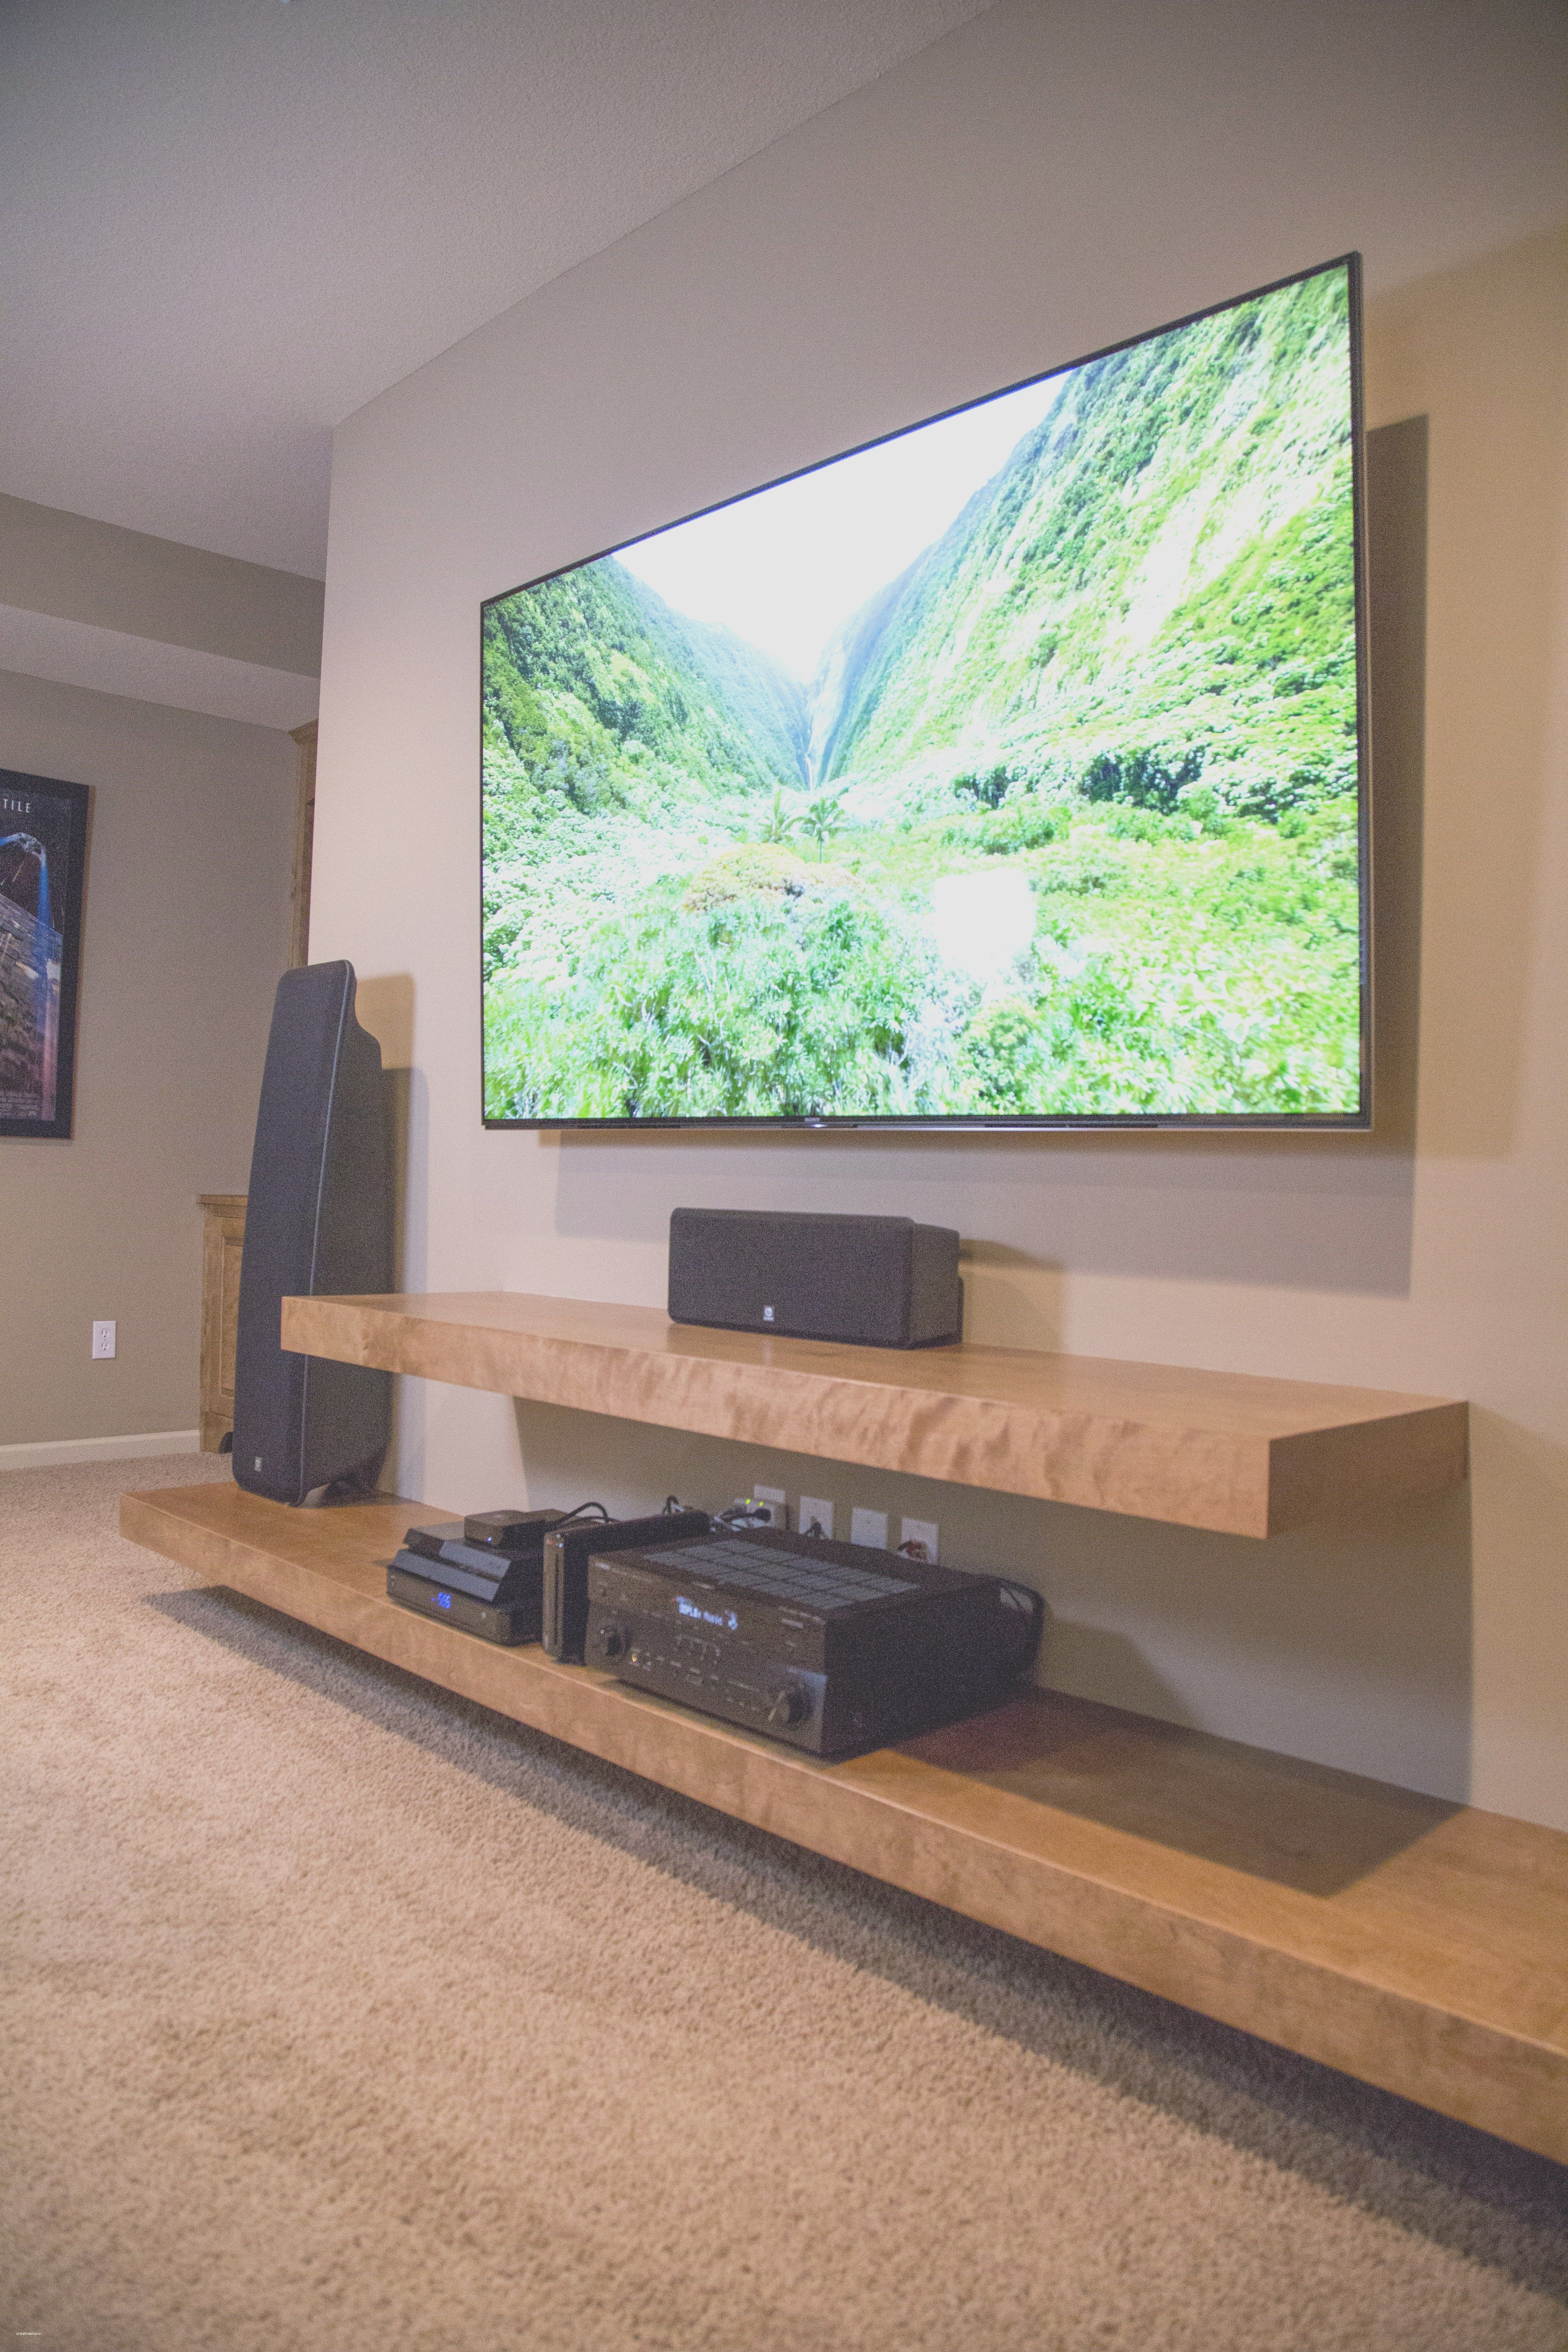 Diy Tv Stand Ideas For Your Room Interior Beautiful Diy Tv Stand